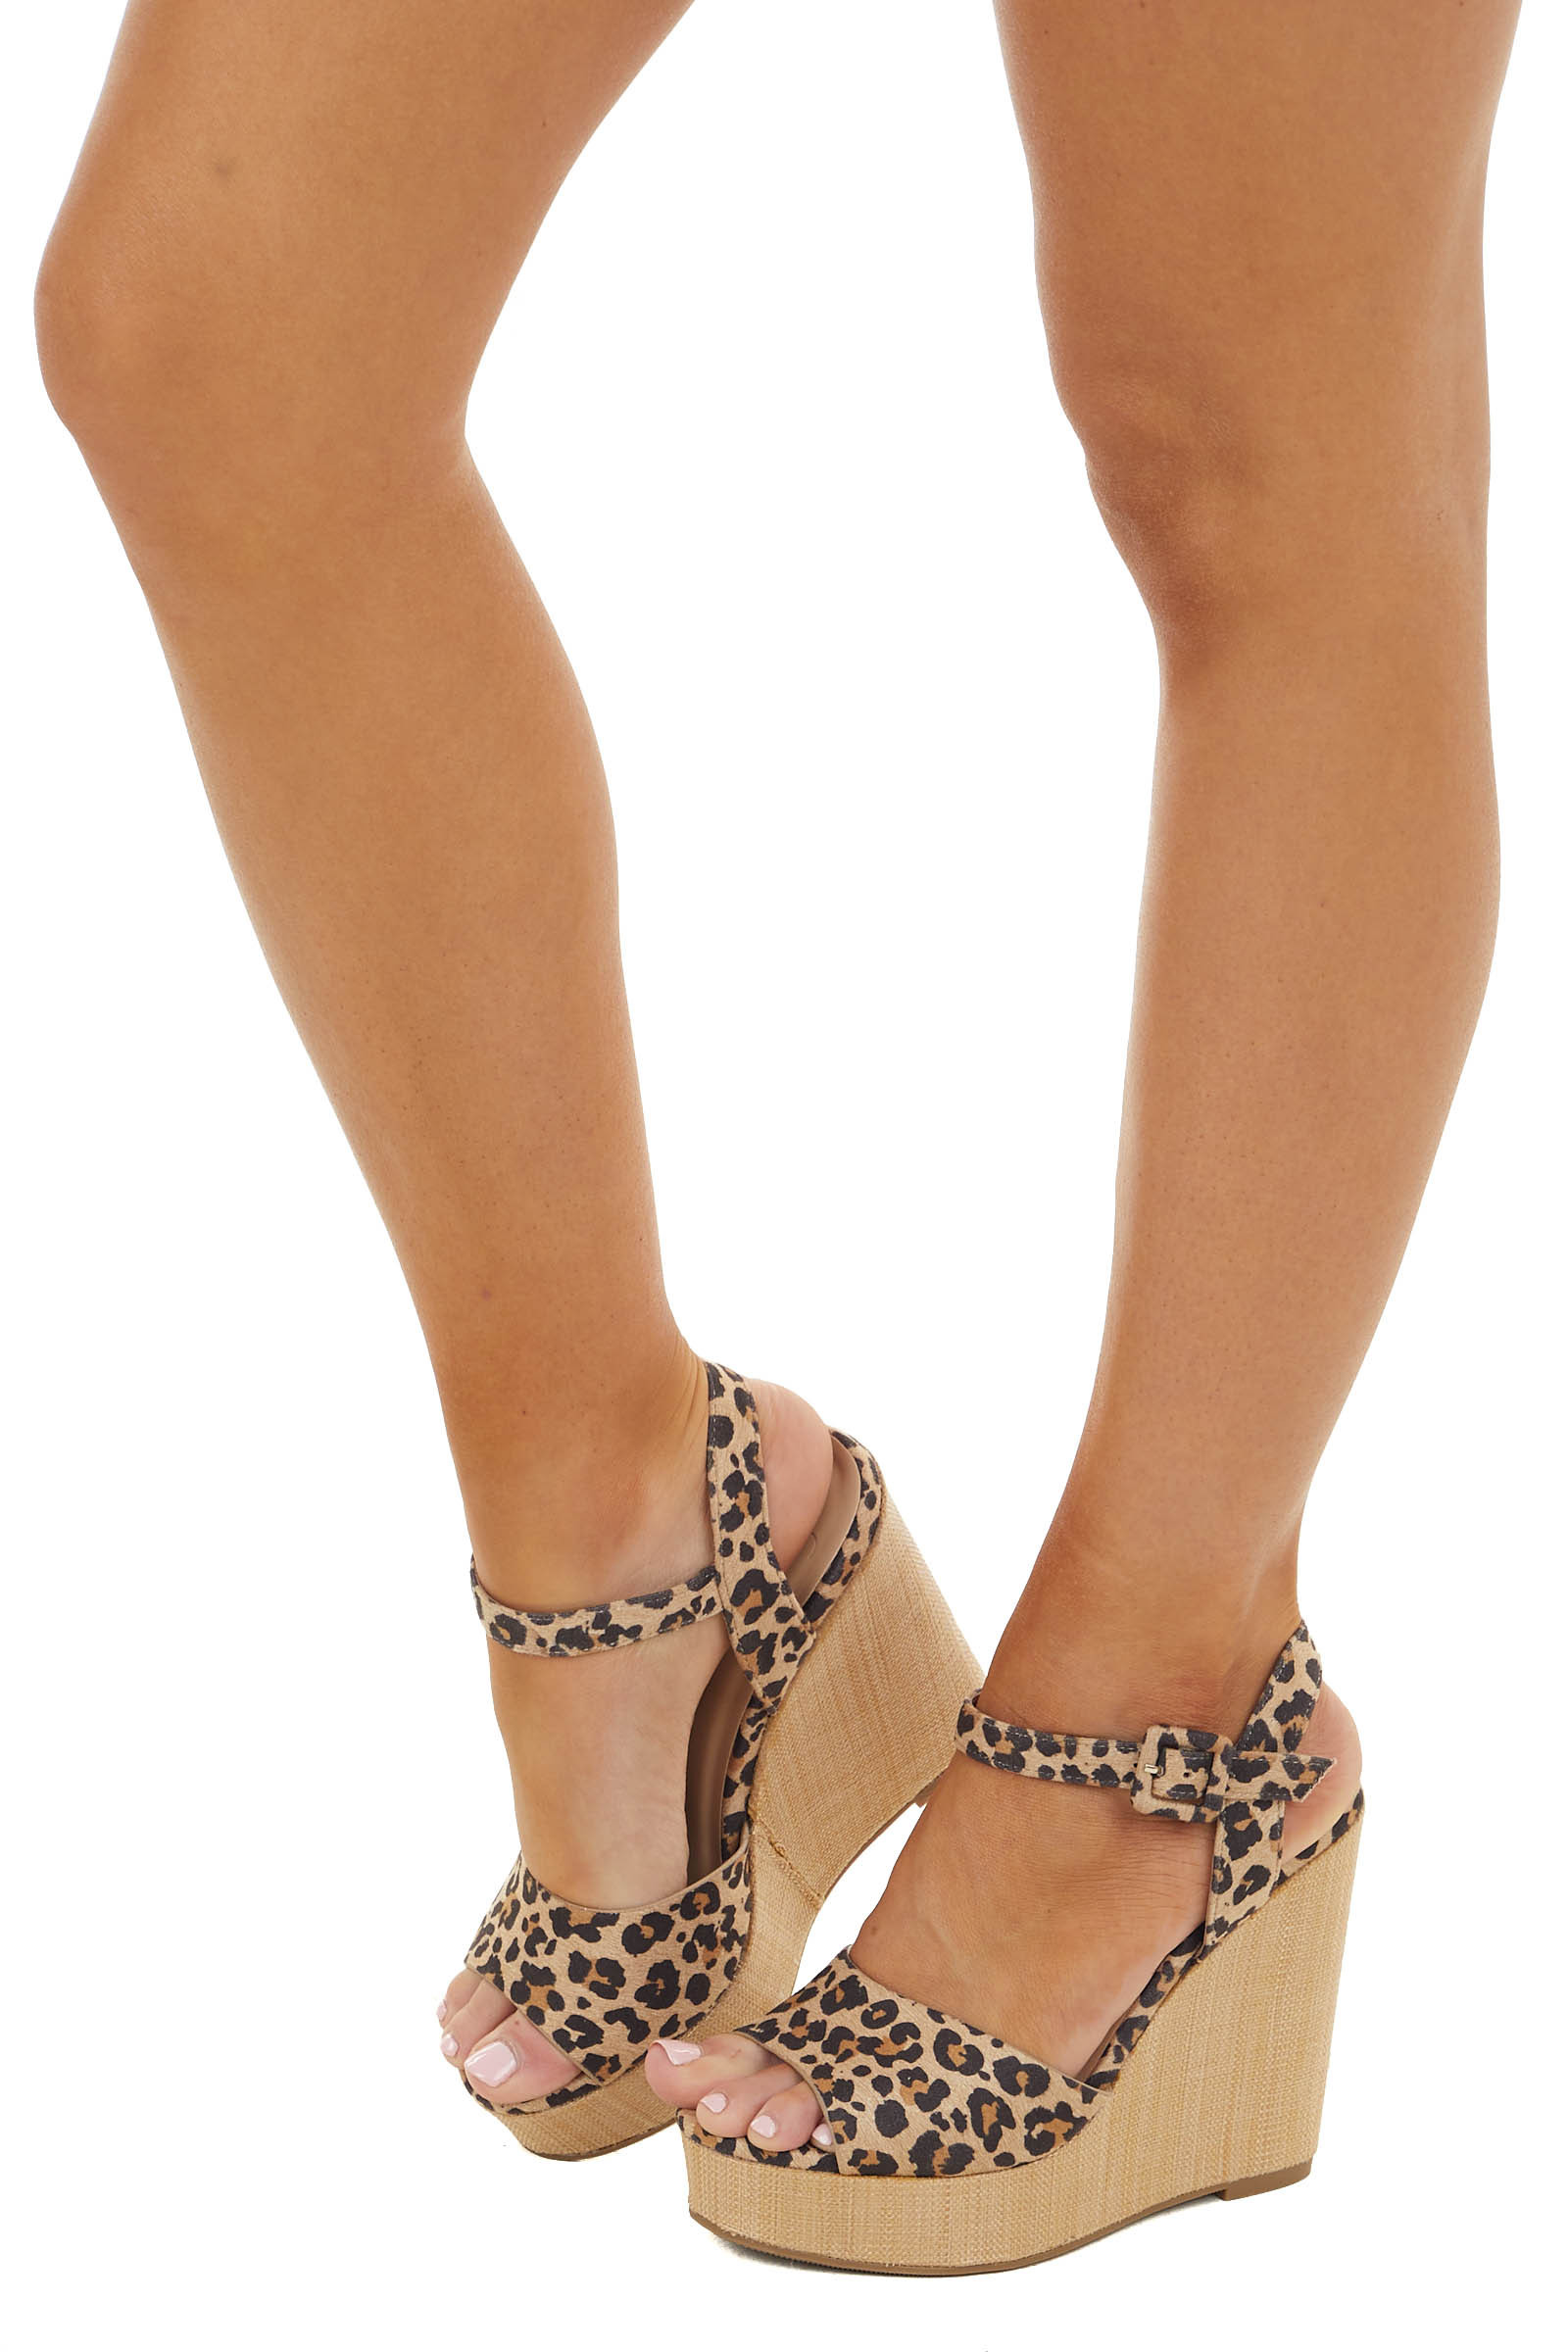 Beige Leopard Print Open Toe Wedge with Ankle Strap